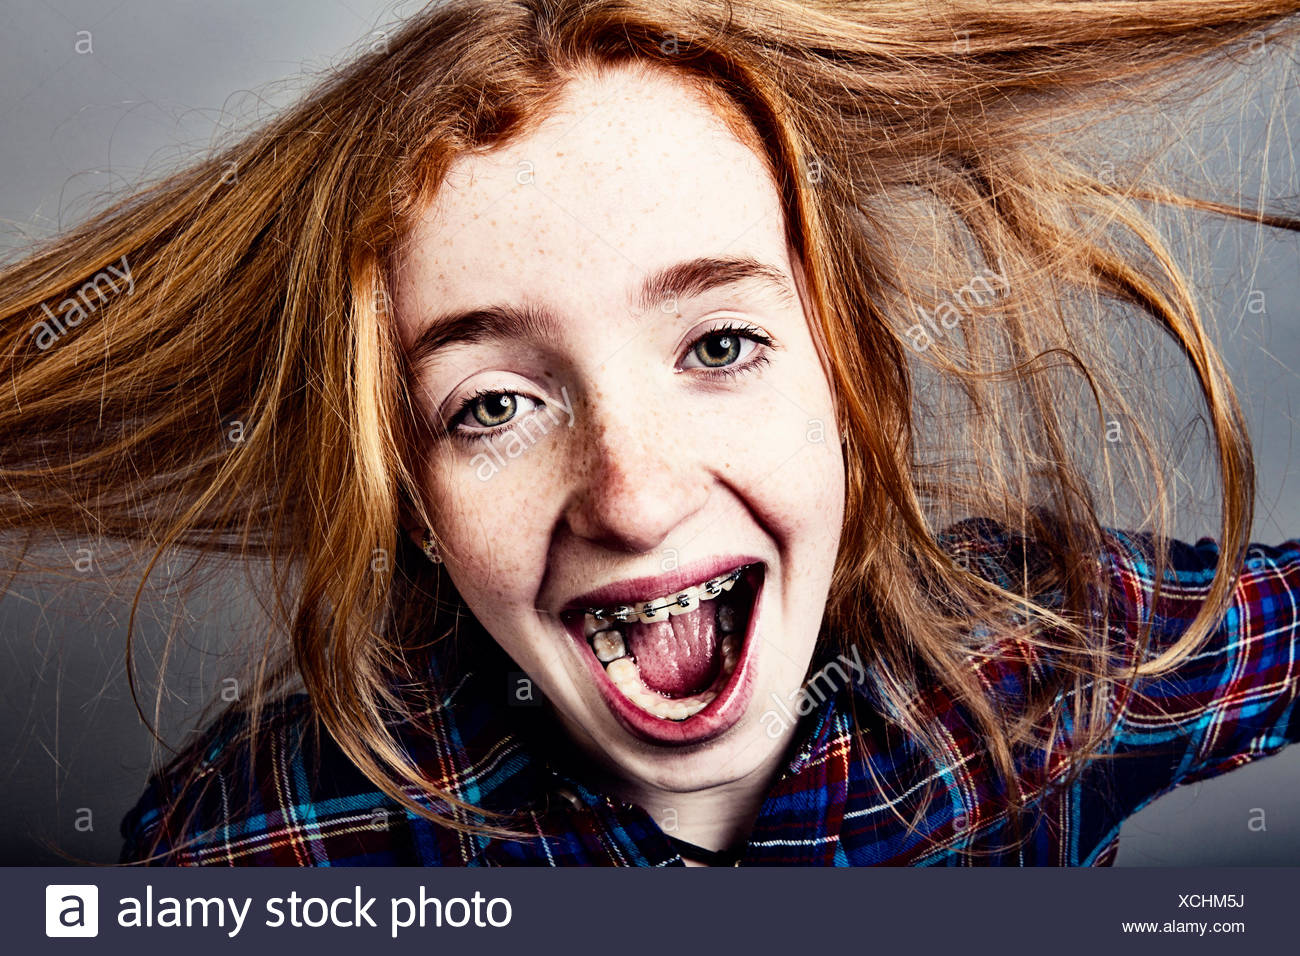 Naughty screaming red-haired girl, portrait Stock Photo